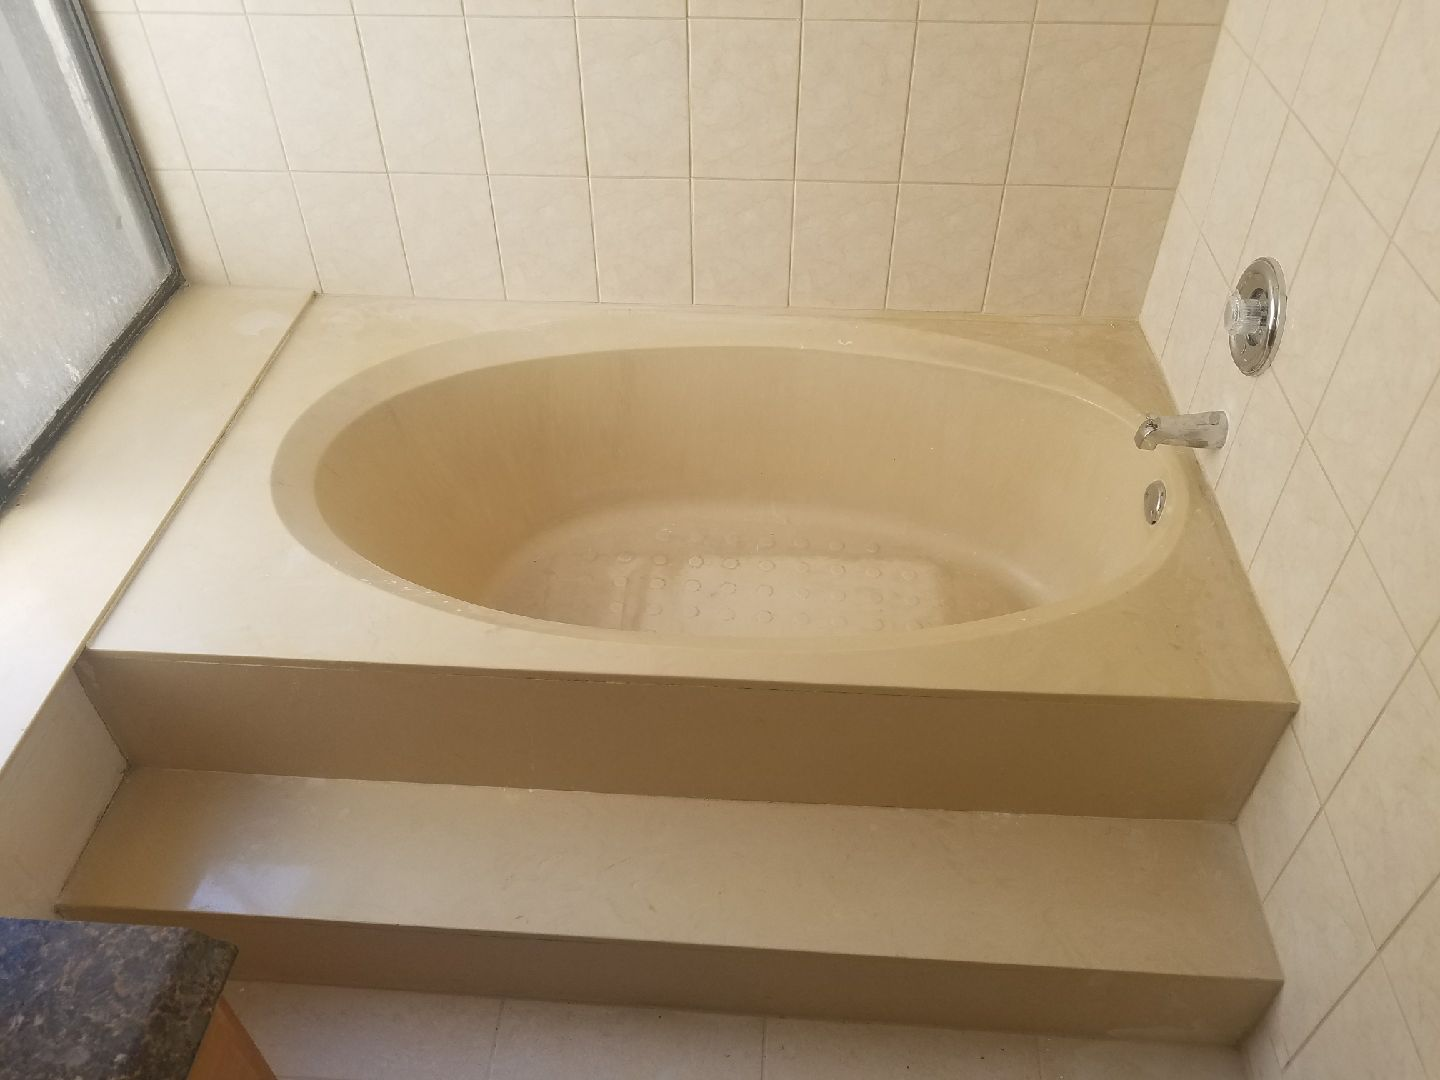 Bathtub Refinishing & Reglazing in Boynton Beach - (561) 394-6116